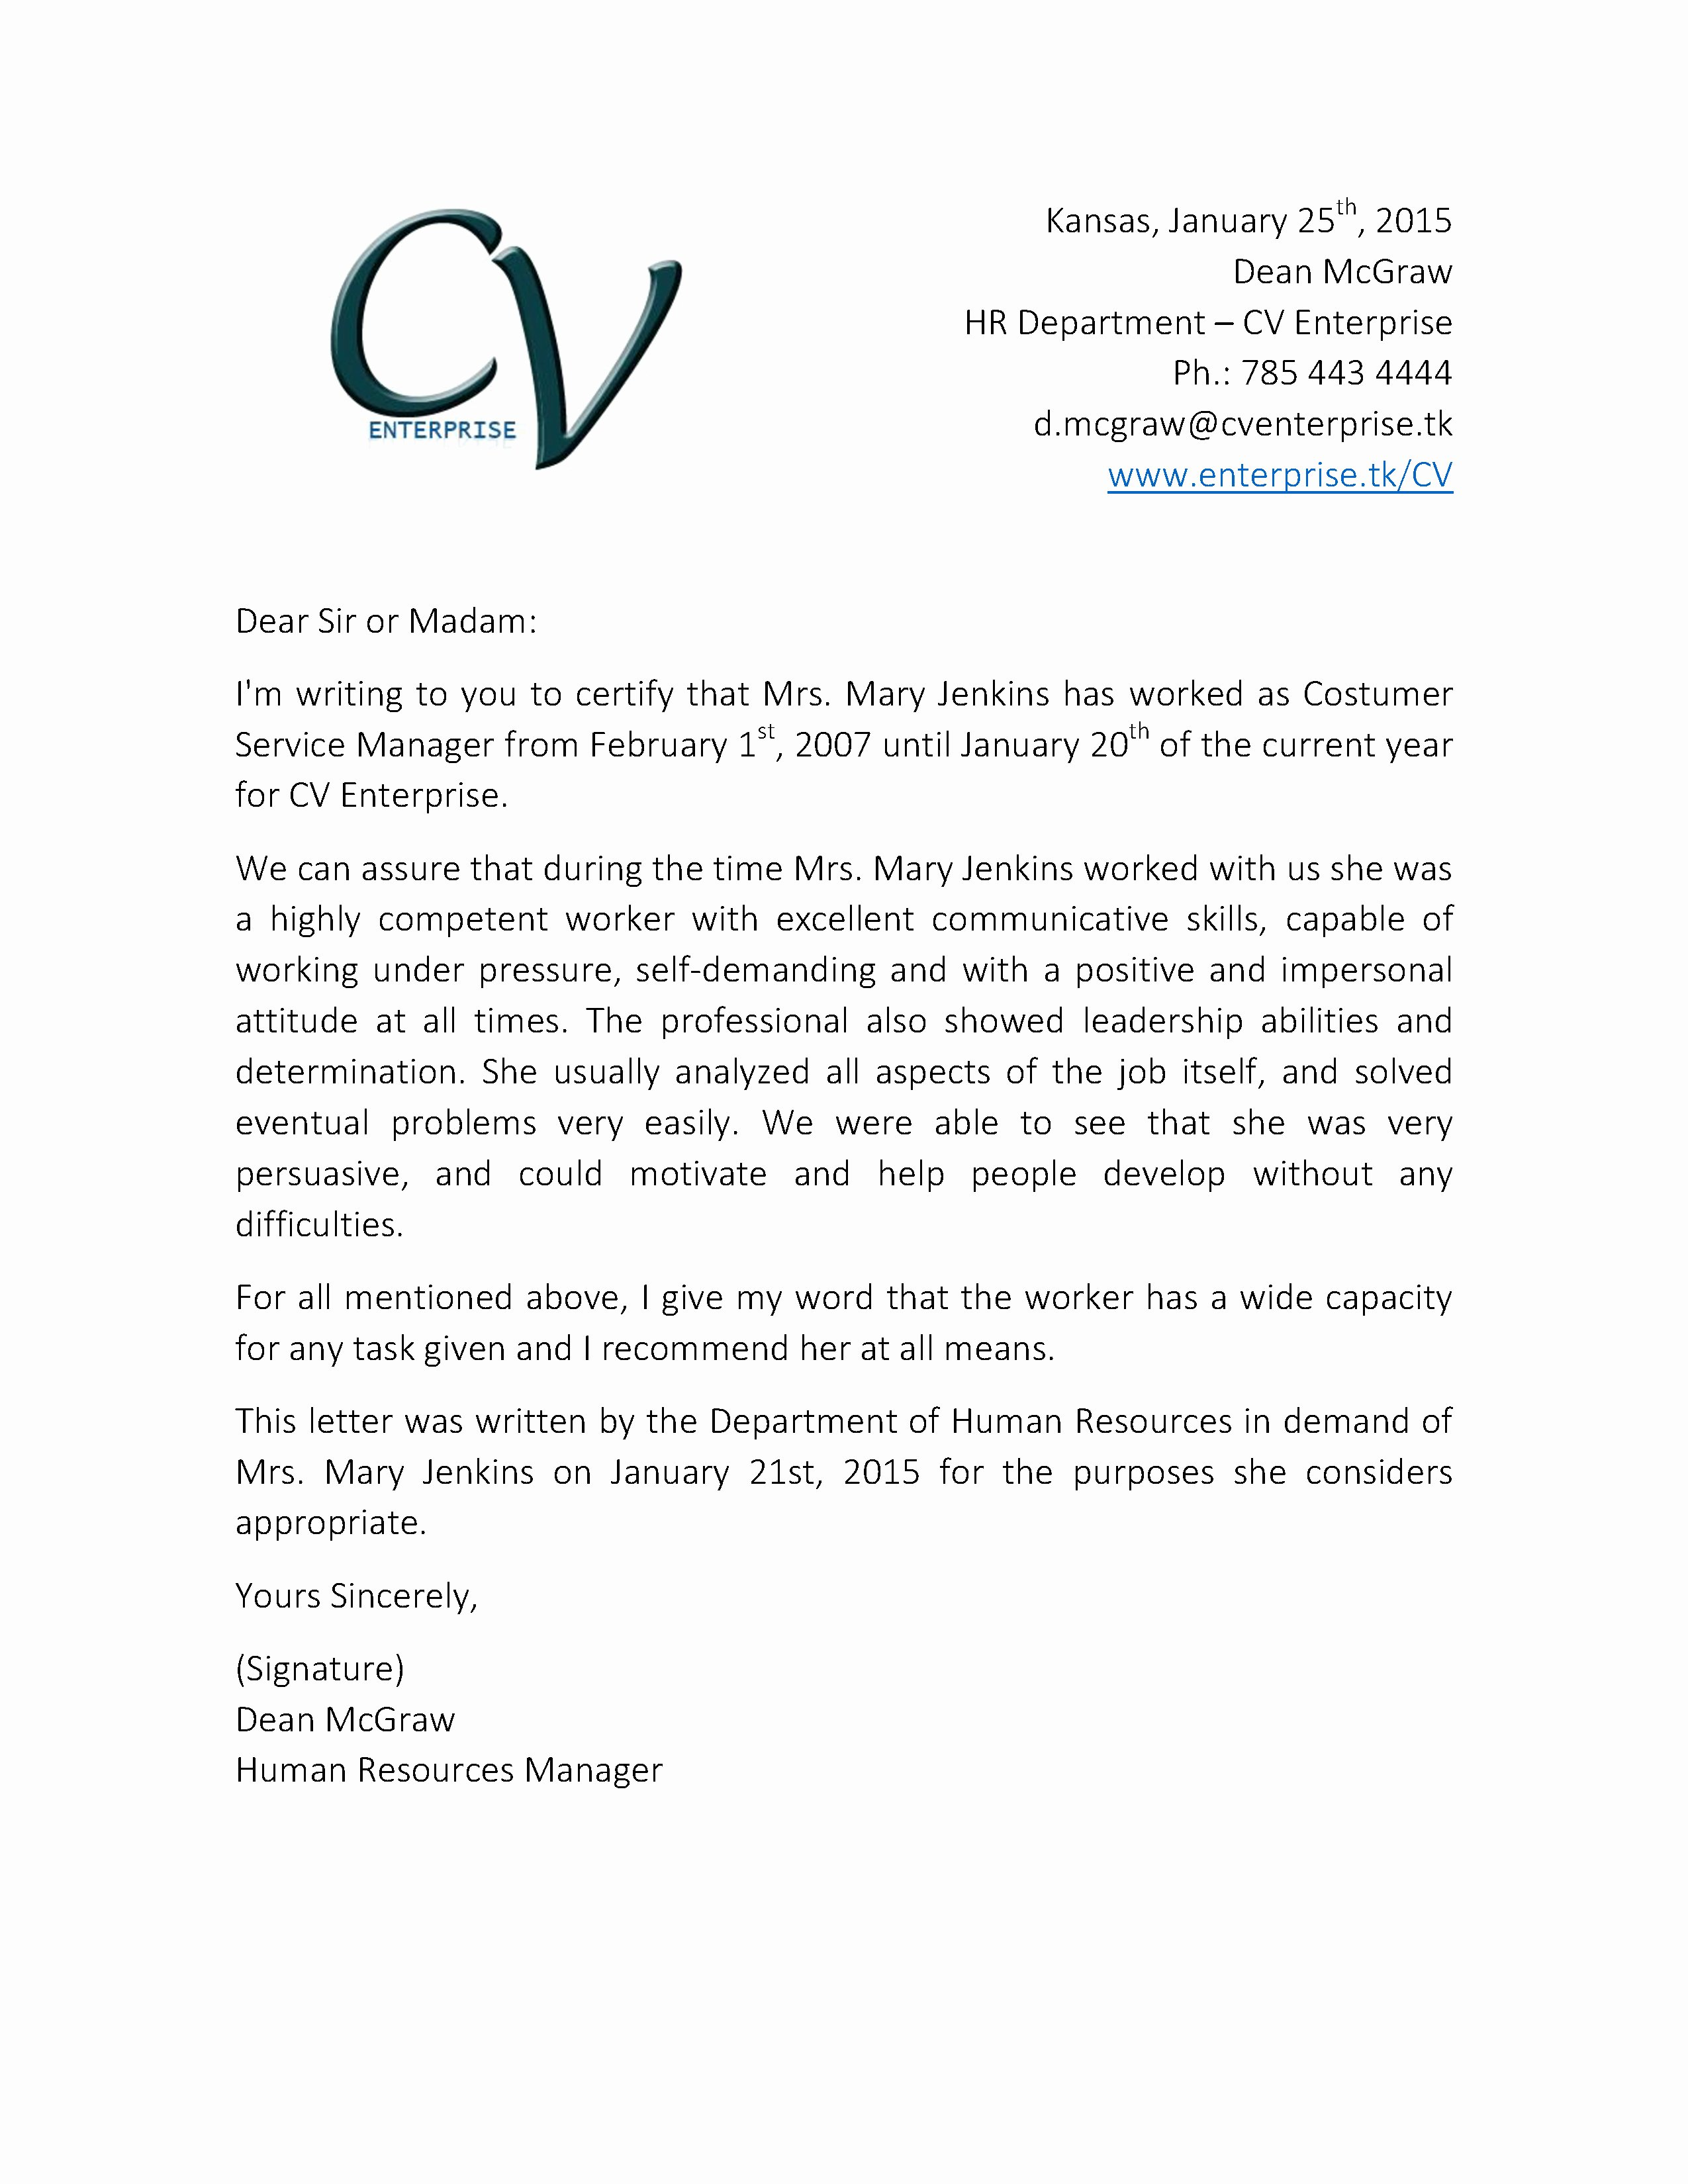 Customer Service Recommendation Letter Inspirational Subcontractor Letter Intent Template Examples